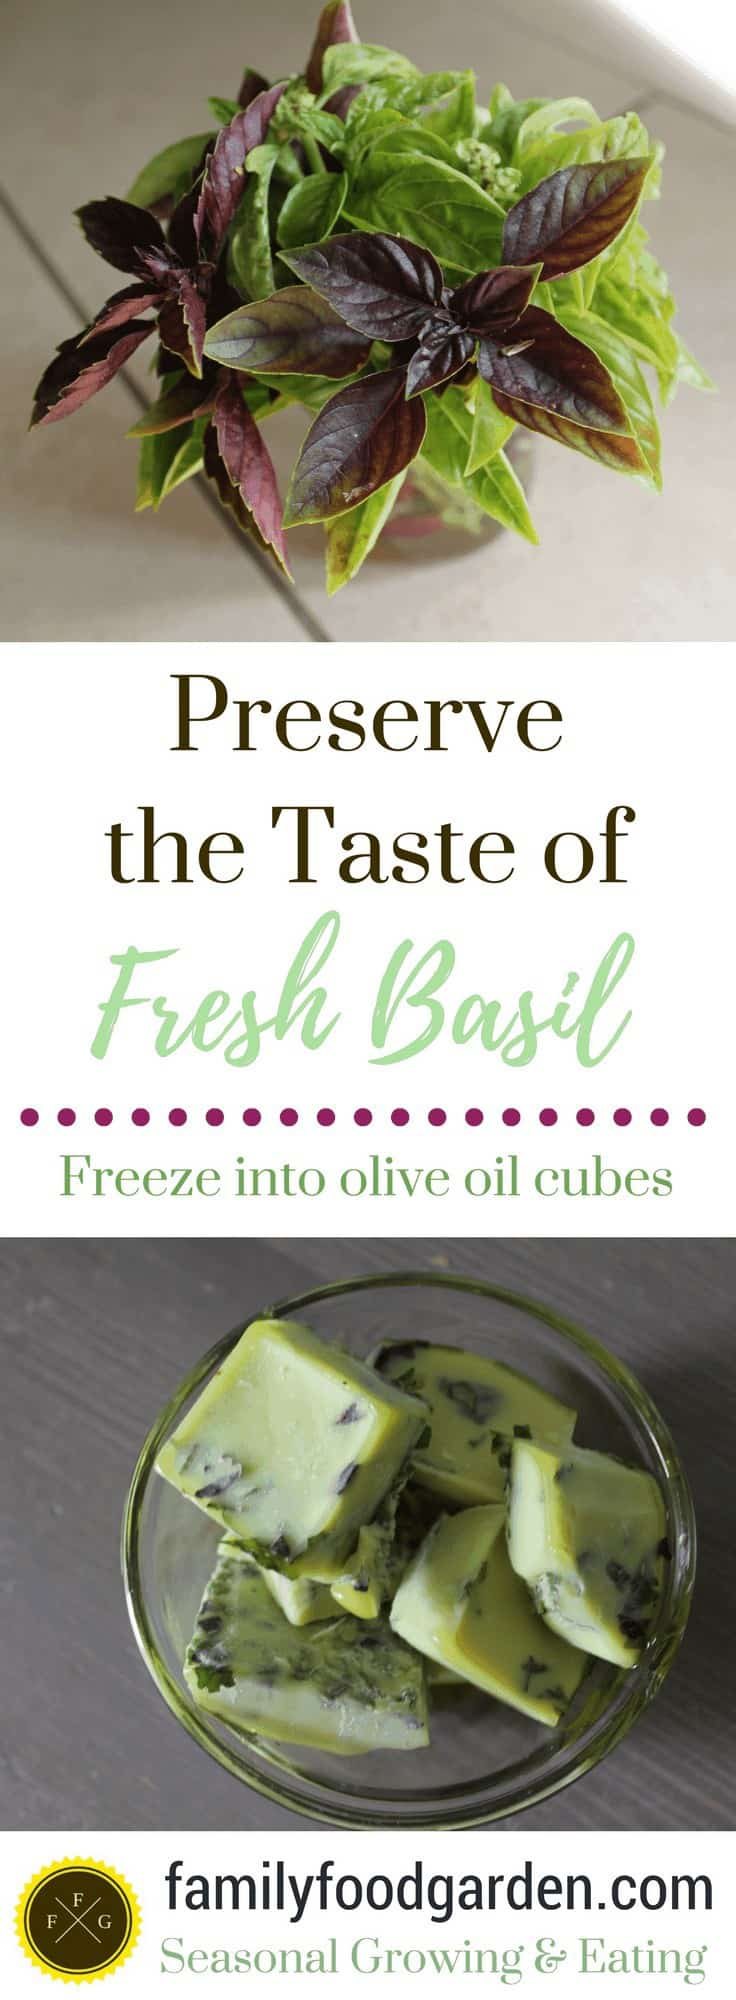 How to preserve fresh basil by freezing